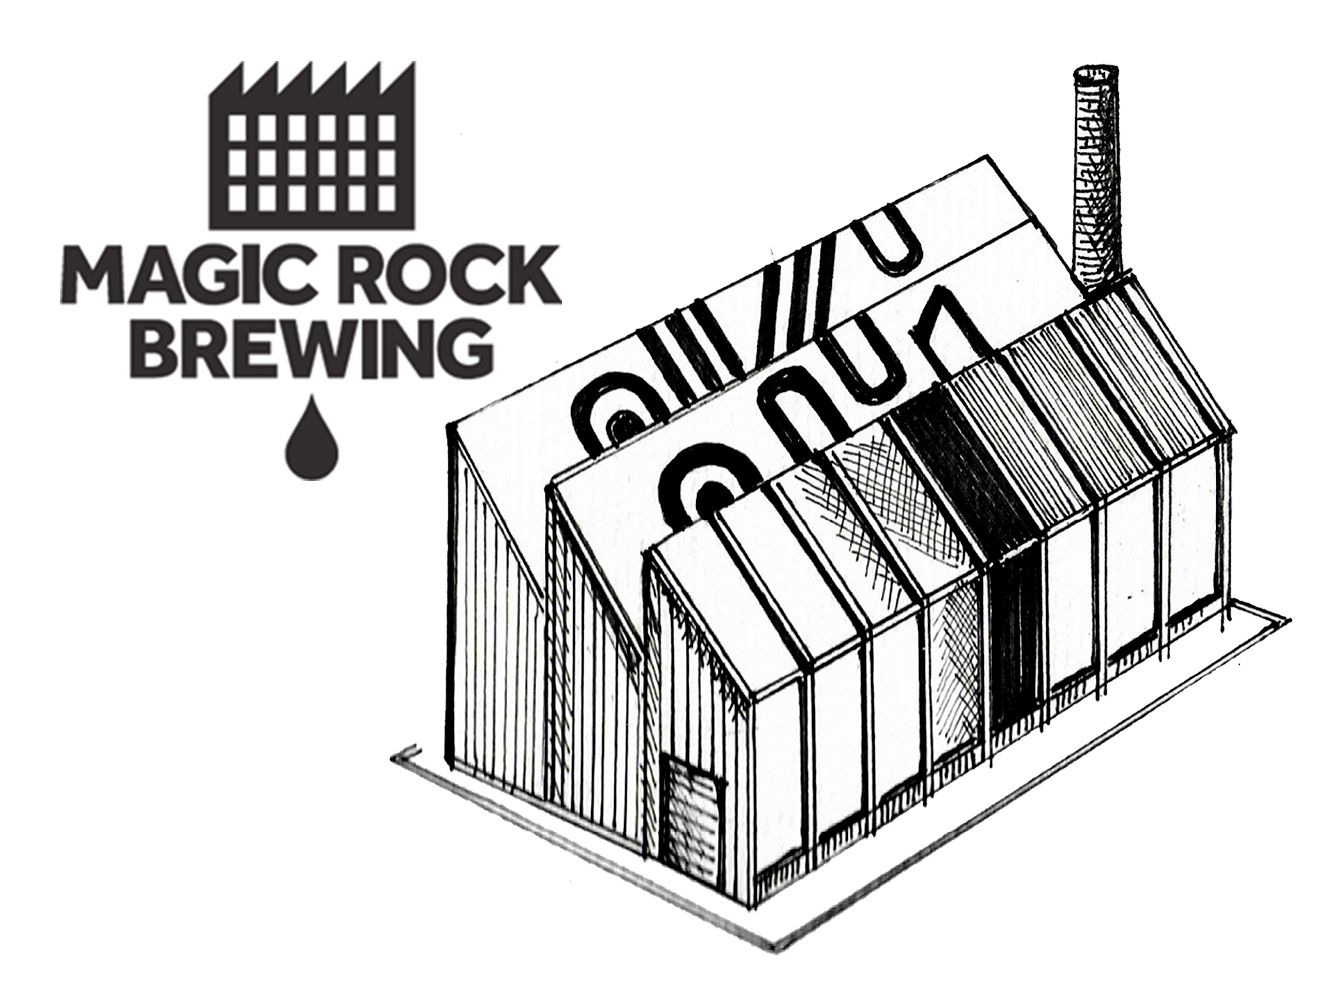 The Brewery Magic Rock Brewing